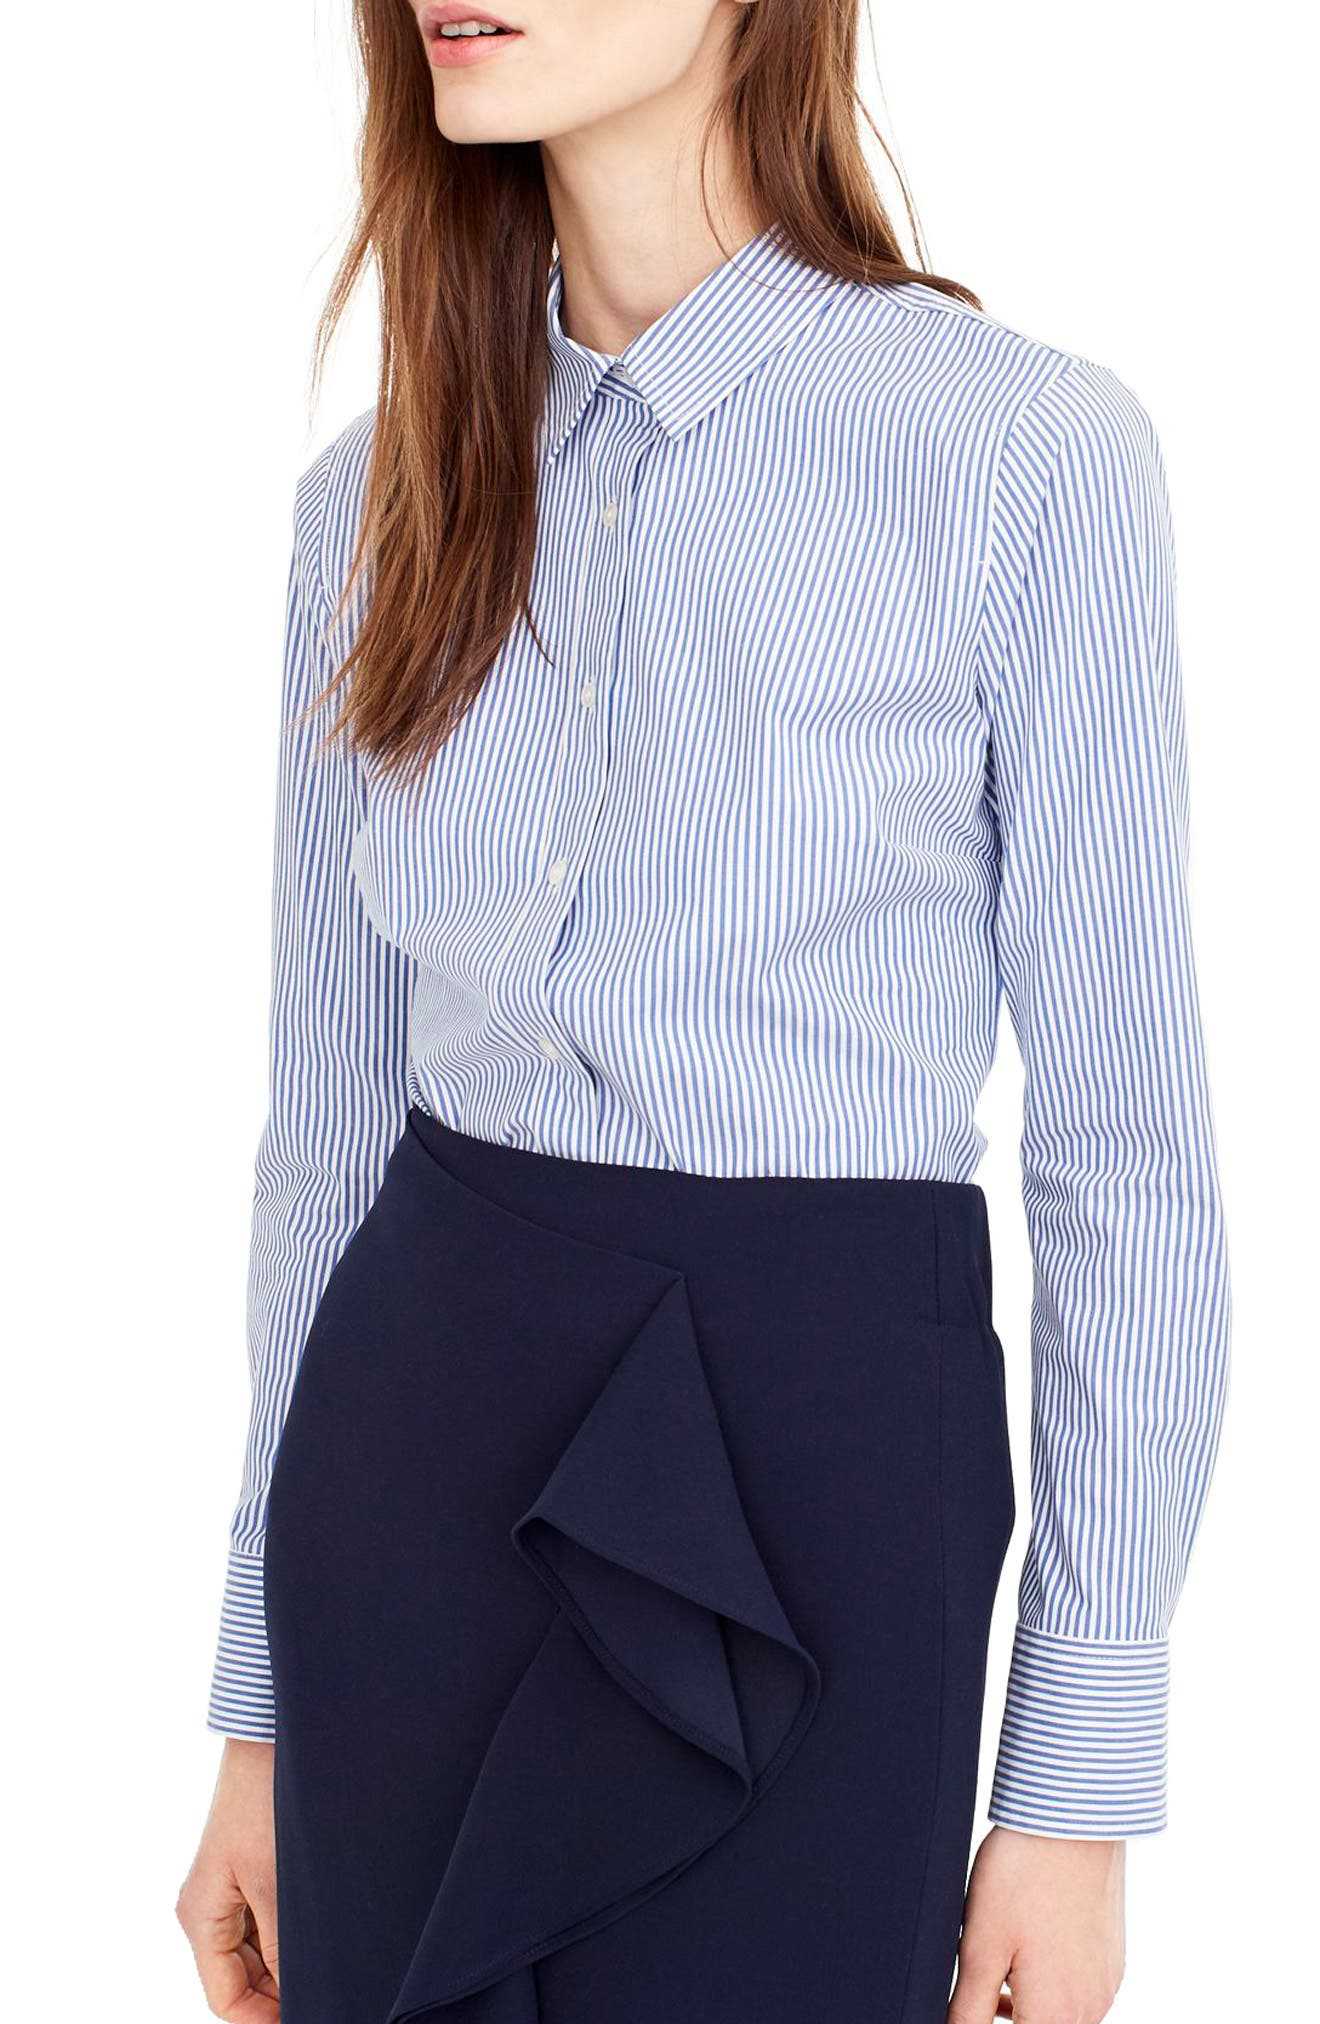 J.Crew Classic Stripe Stretch Perfect Cotton Shirt,                         Main,                         color, French Blue